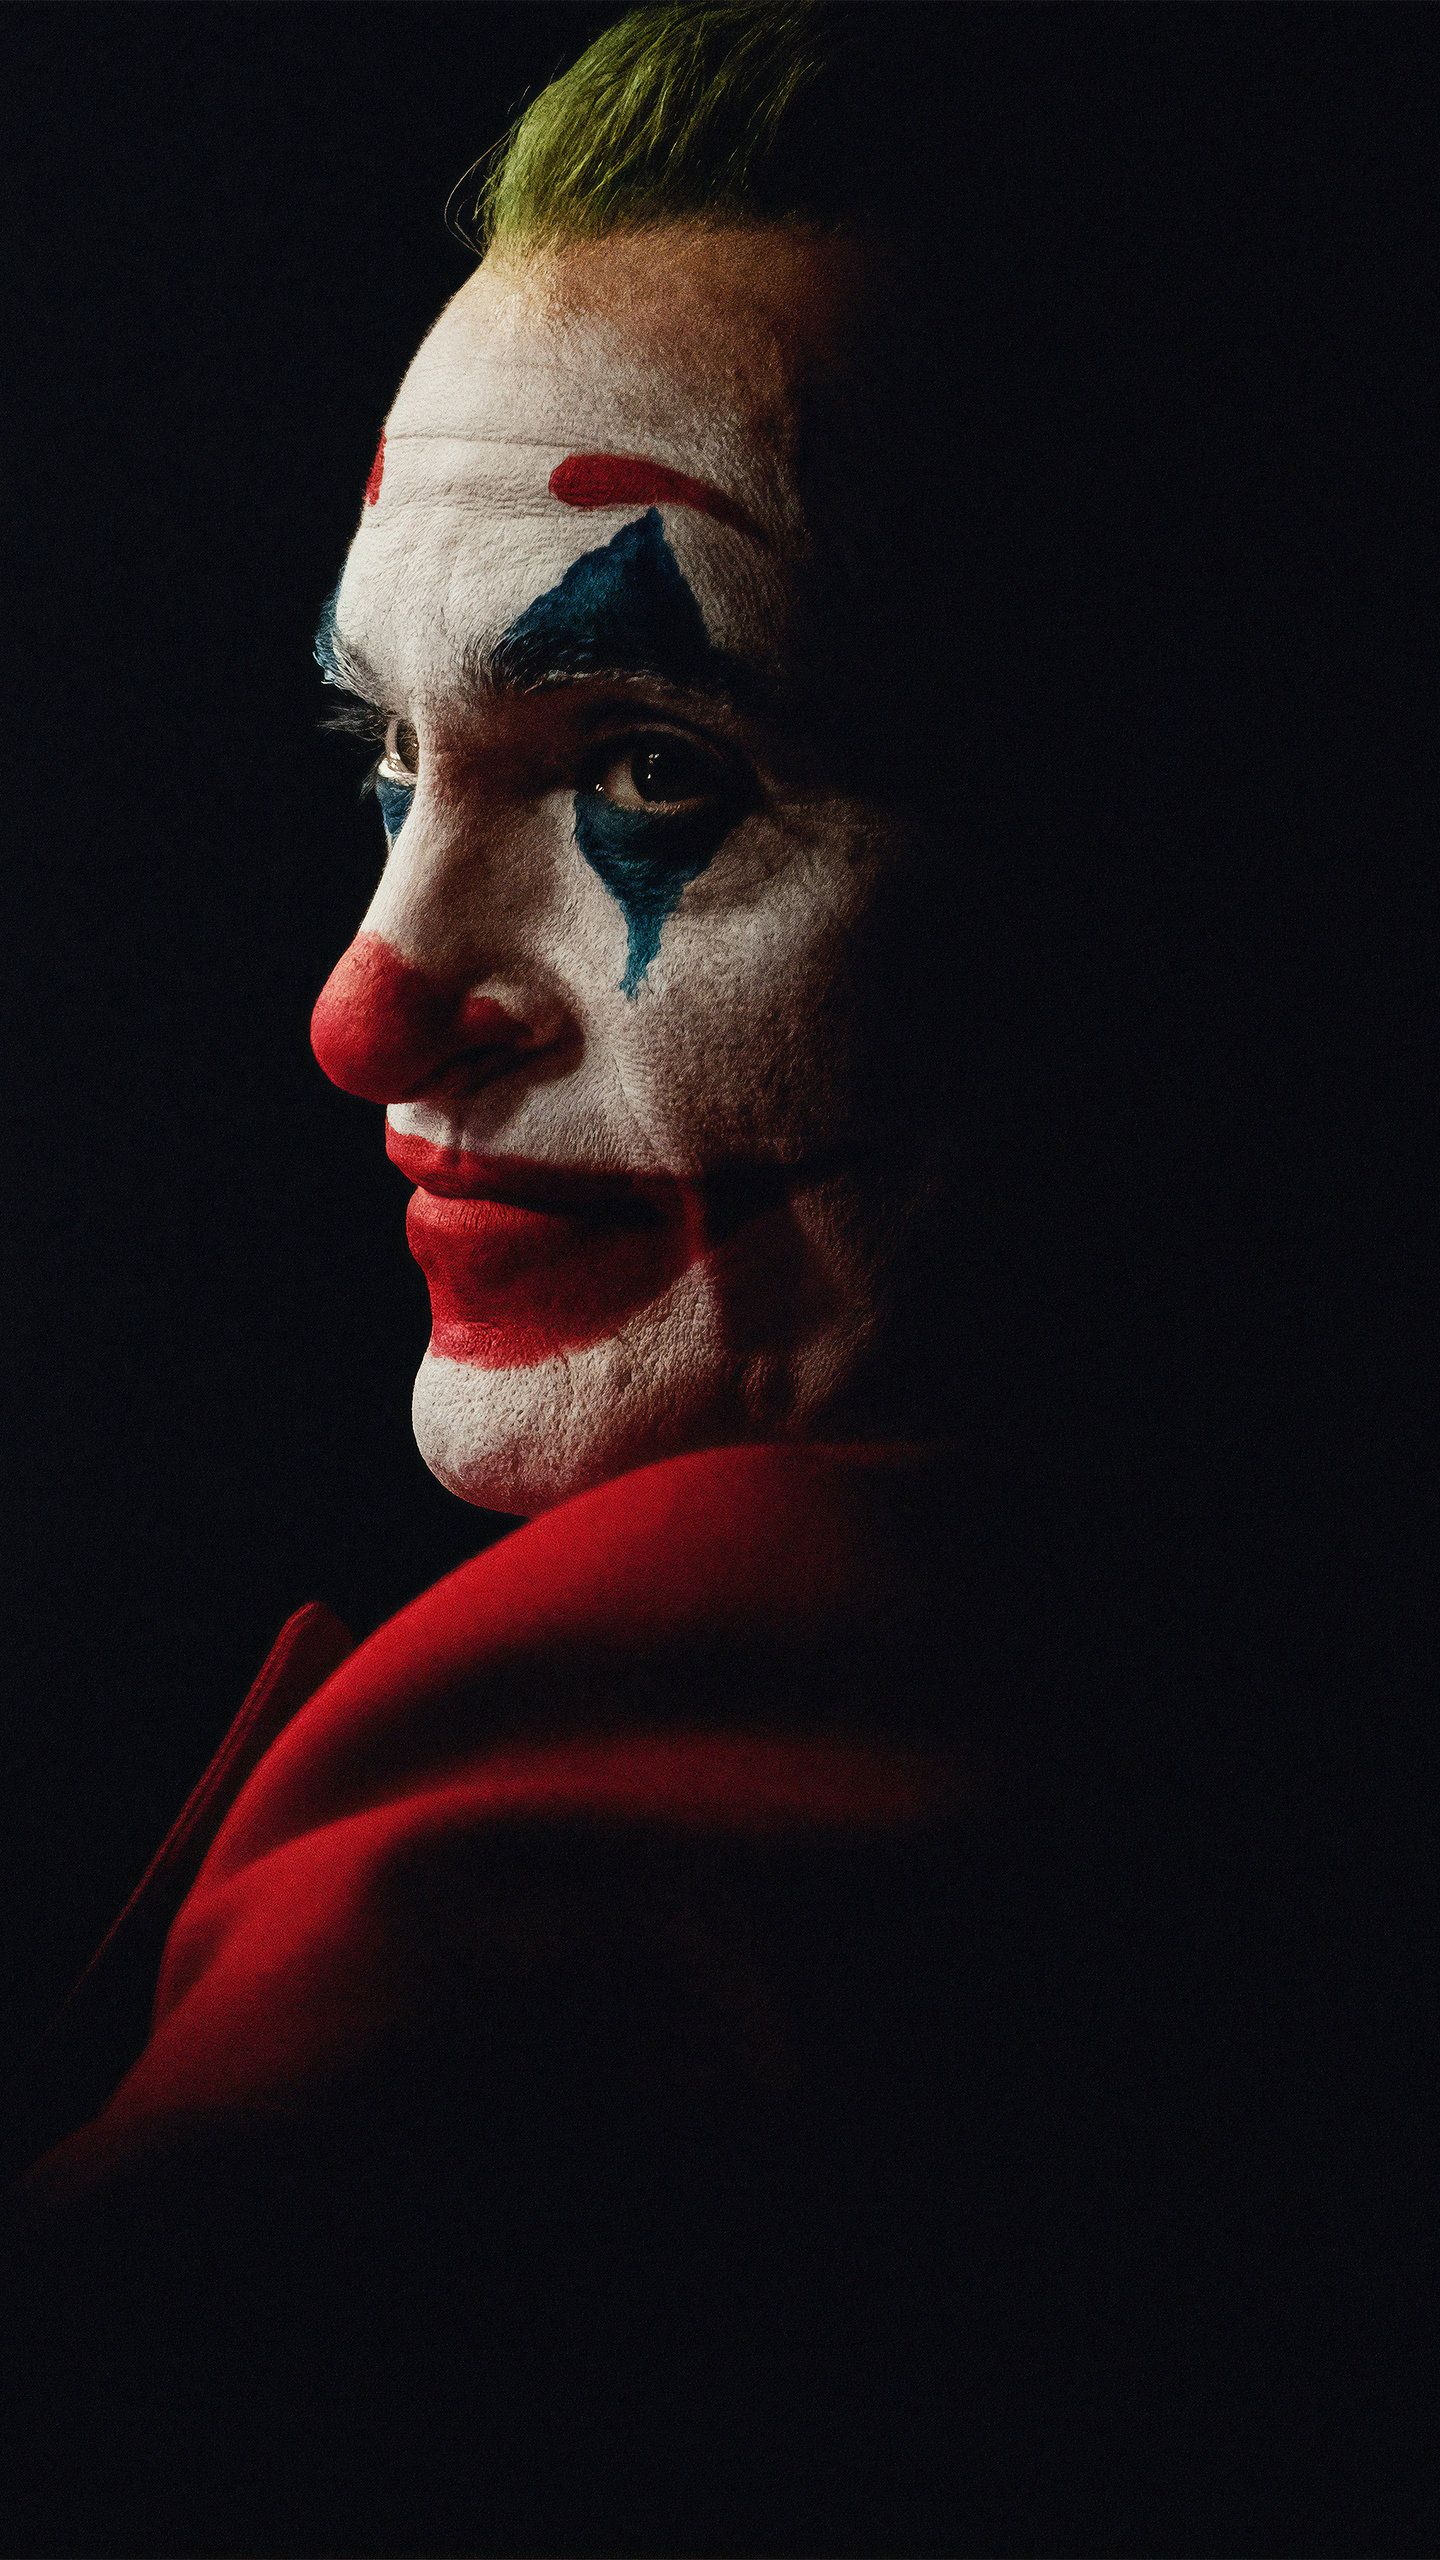 The Joker Joaquin Phoenix Dark 4k Hd Movies Wallpapers Photos And Pictures Id 44006 El Guason Joker Arte De Chisisto